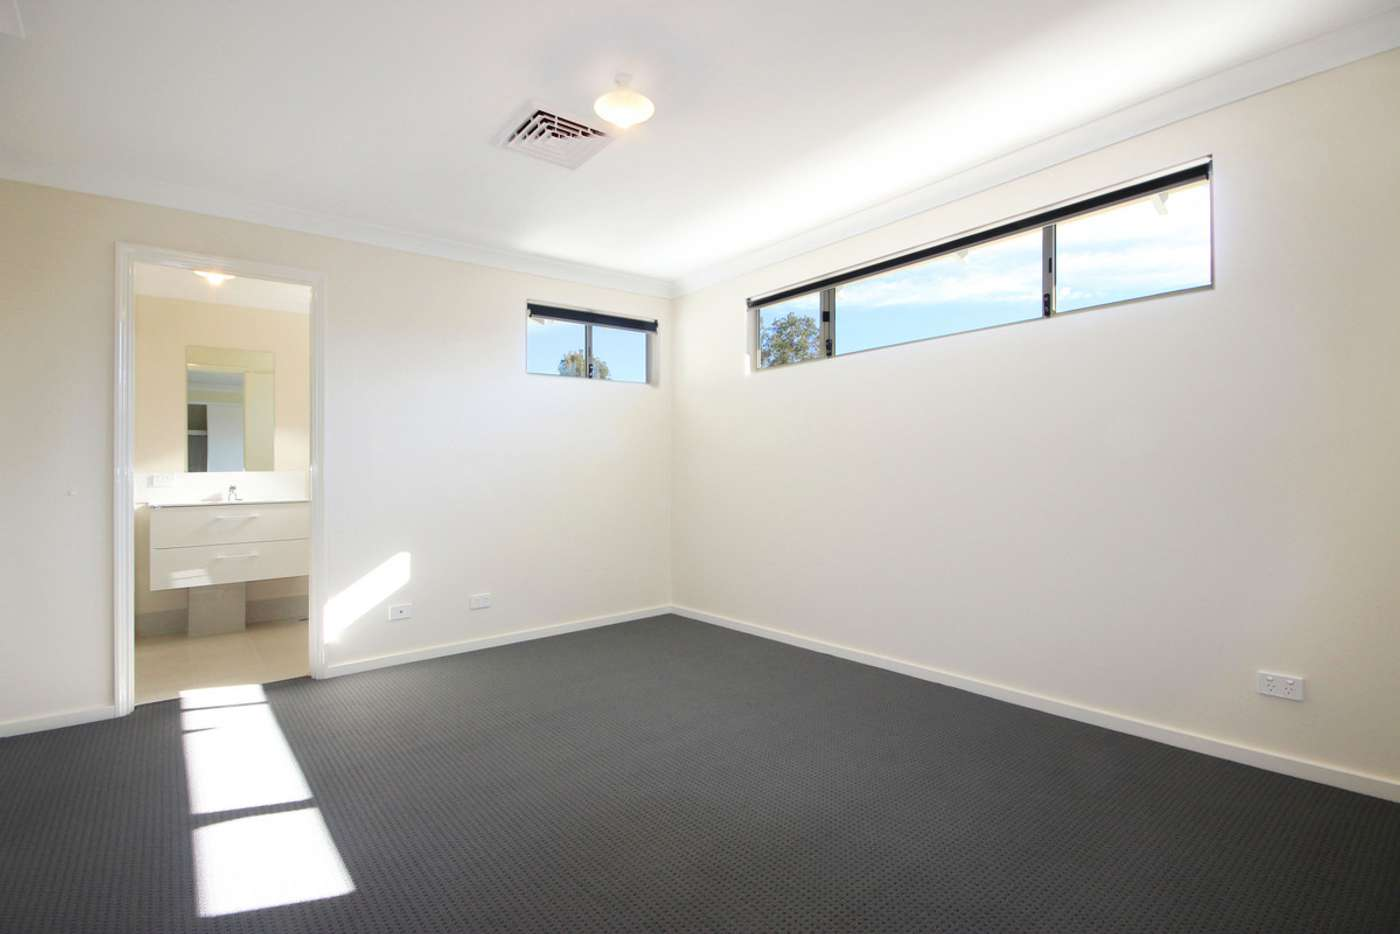 Seventh view of Homely townhouse listing, 3/38 Broadway, Bassendean WA 6054